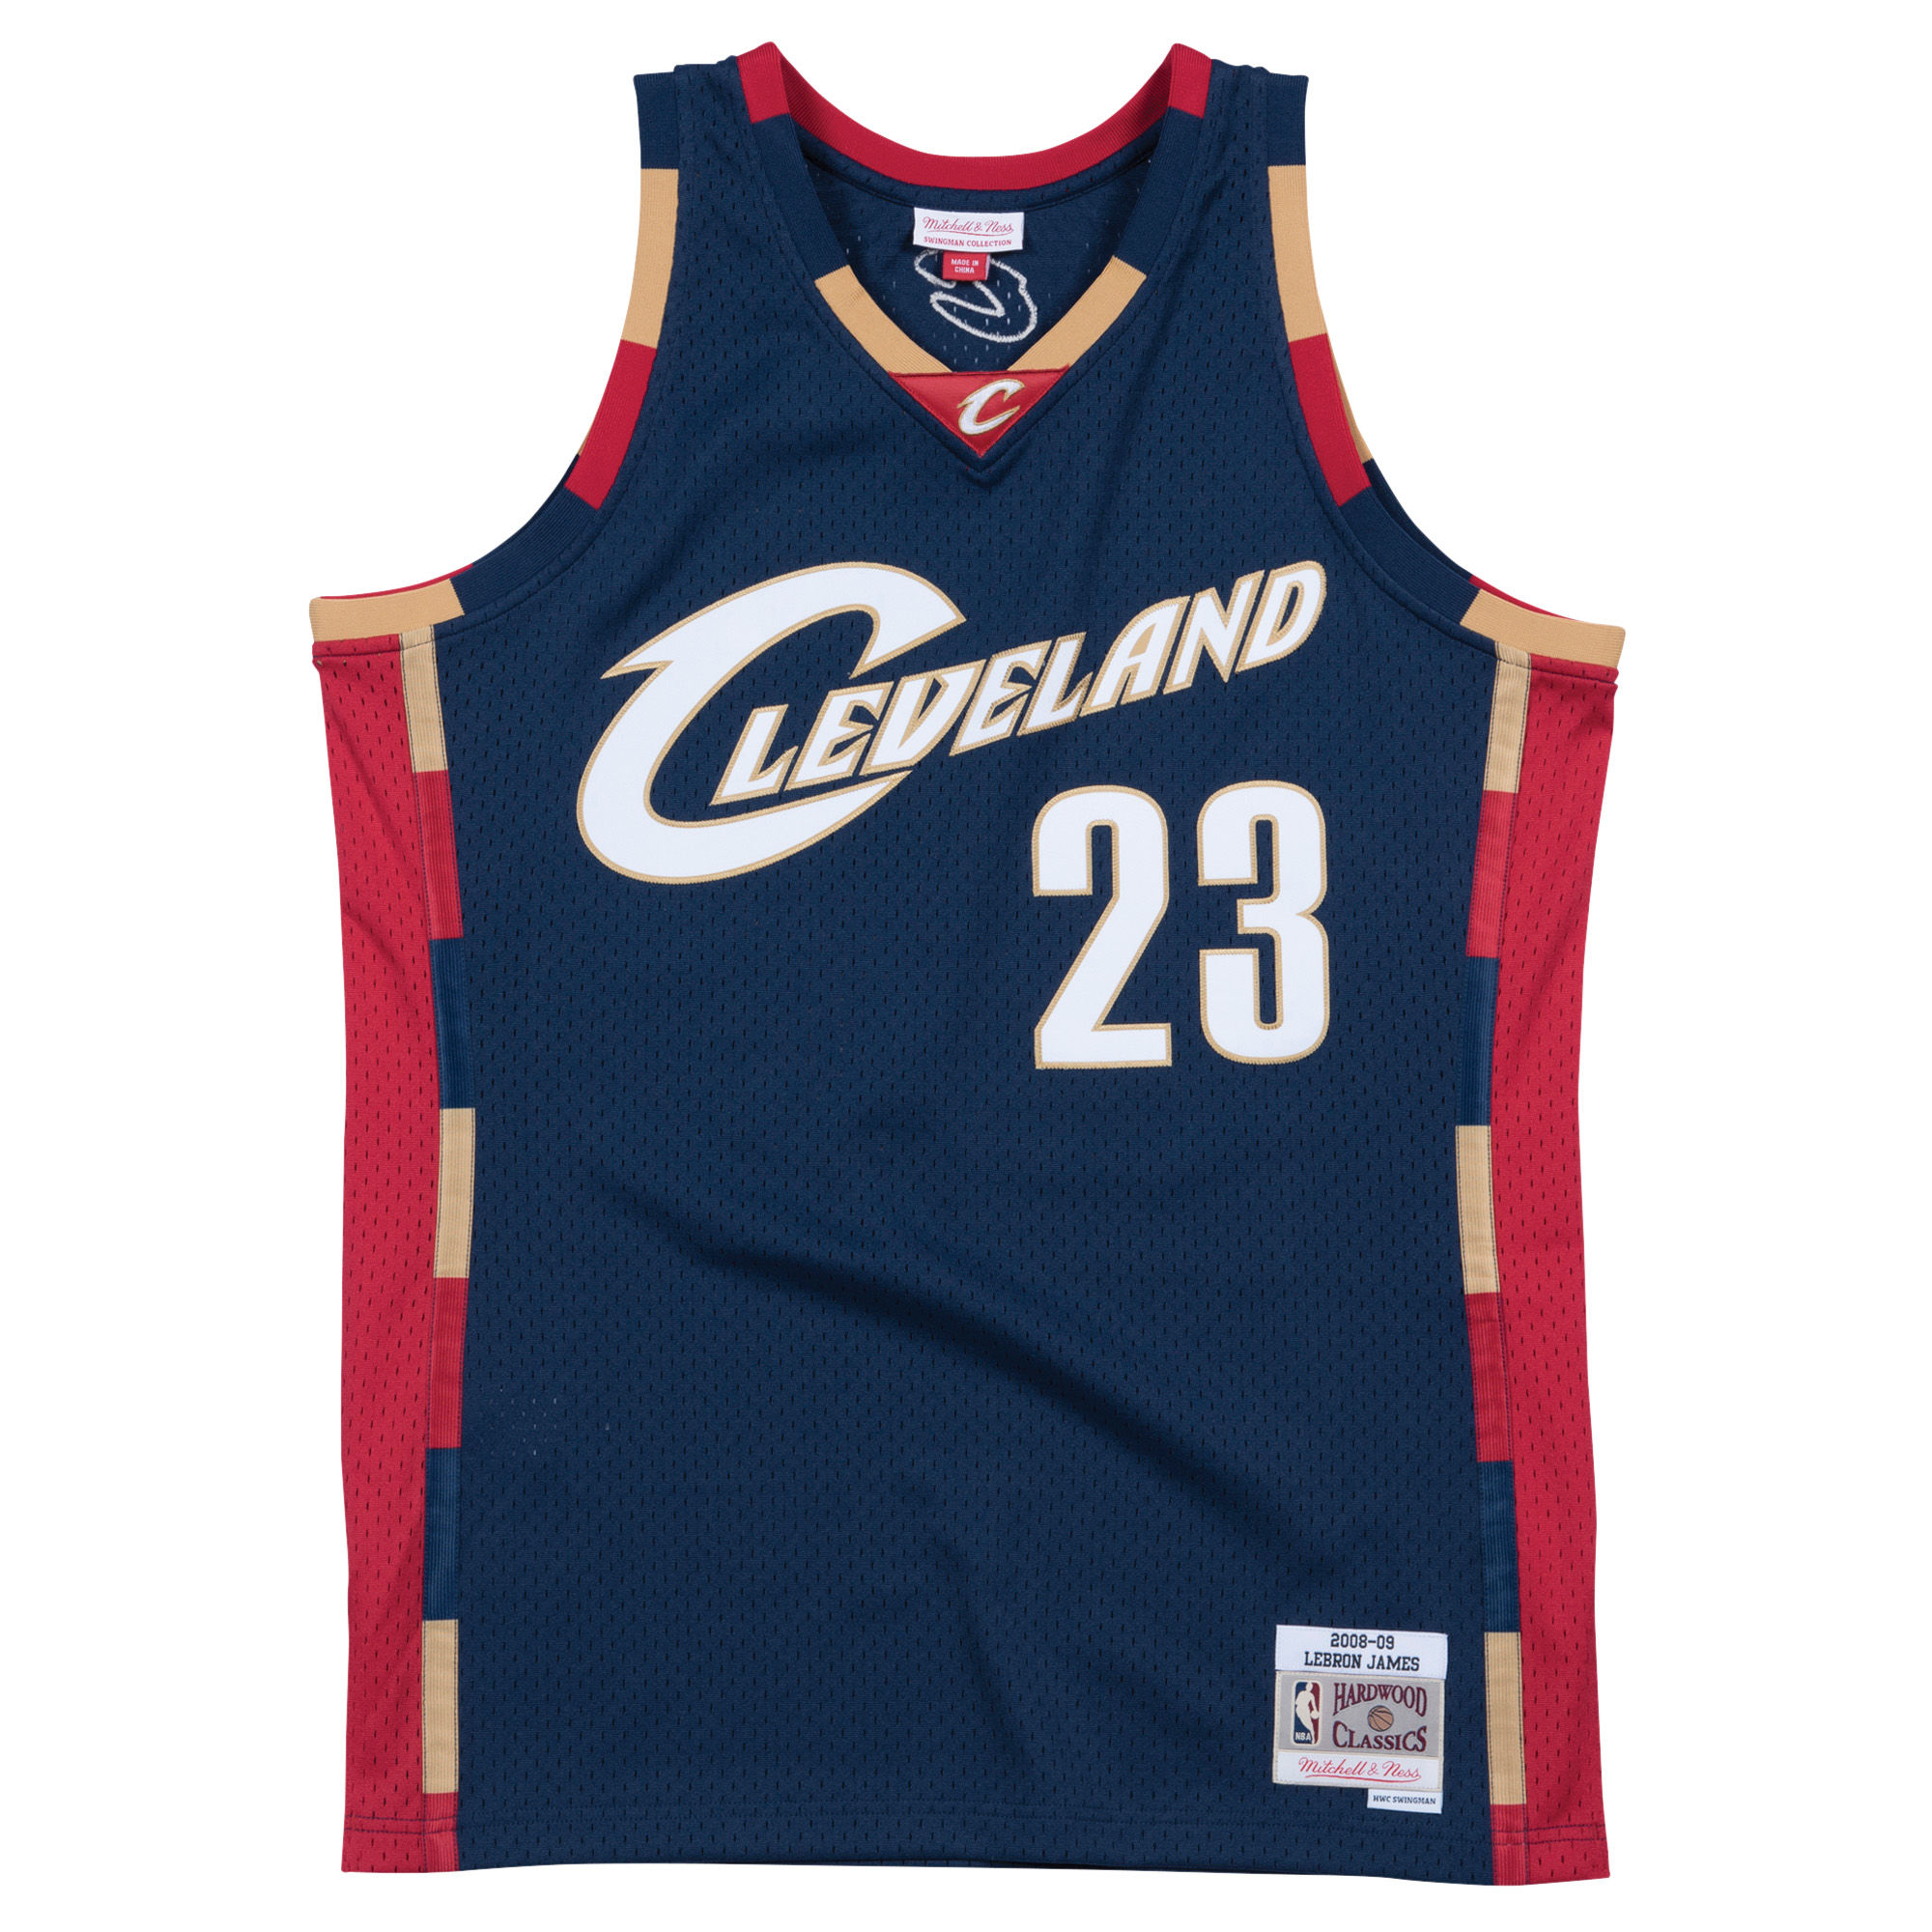 351e63ceb3e Cleveland Cavaliers 08/09 Retro 100% Authentic Jersey Personalized Name and  Number